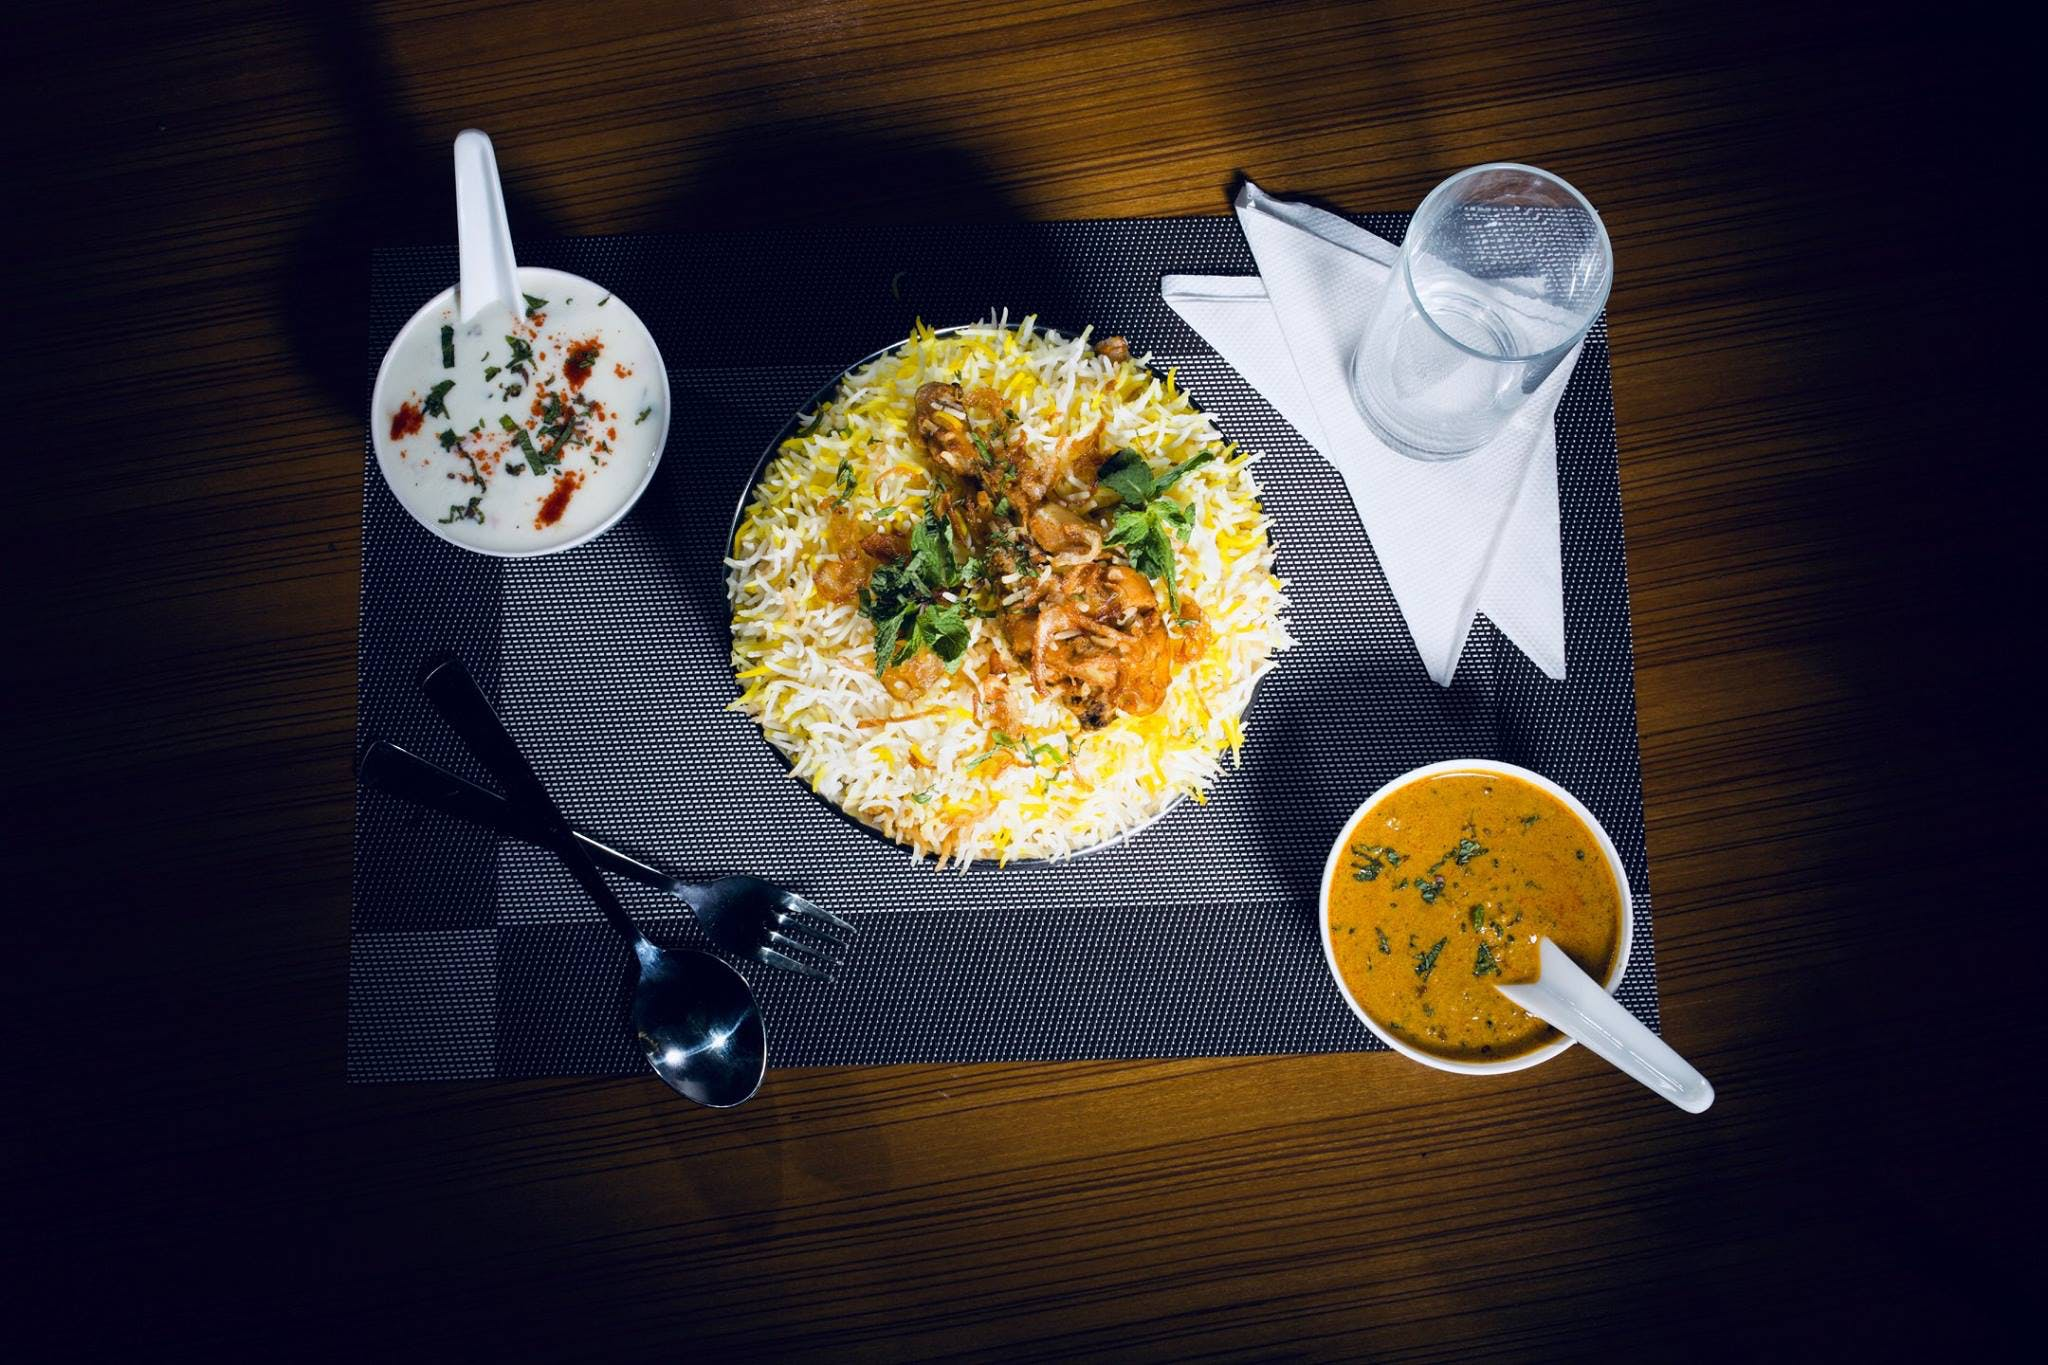 Food,Dish,Steamed rice,Cuisine,Ingredient,White rice,Comfort food,Garnish,À la carte food,Risotto